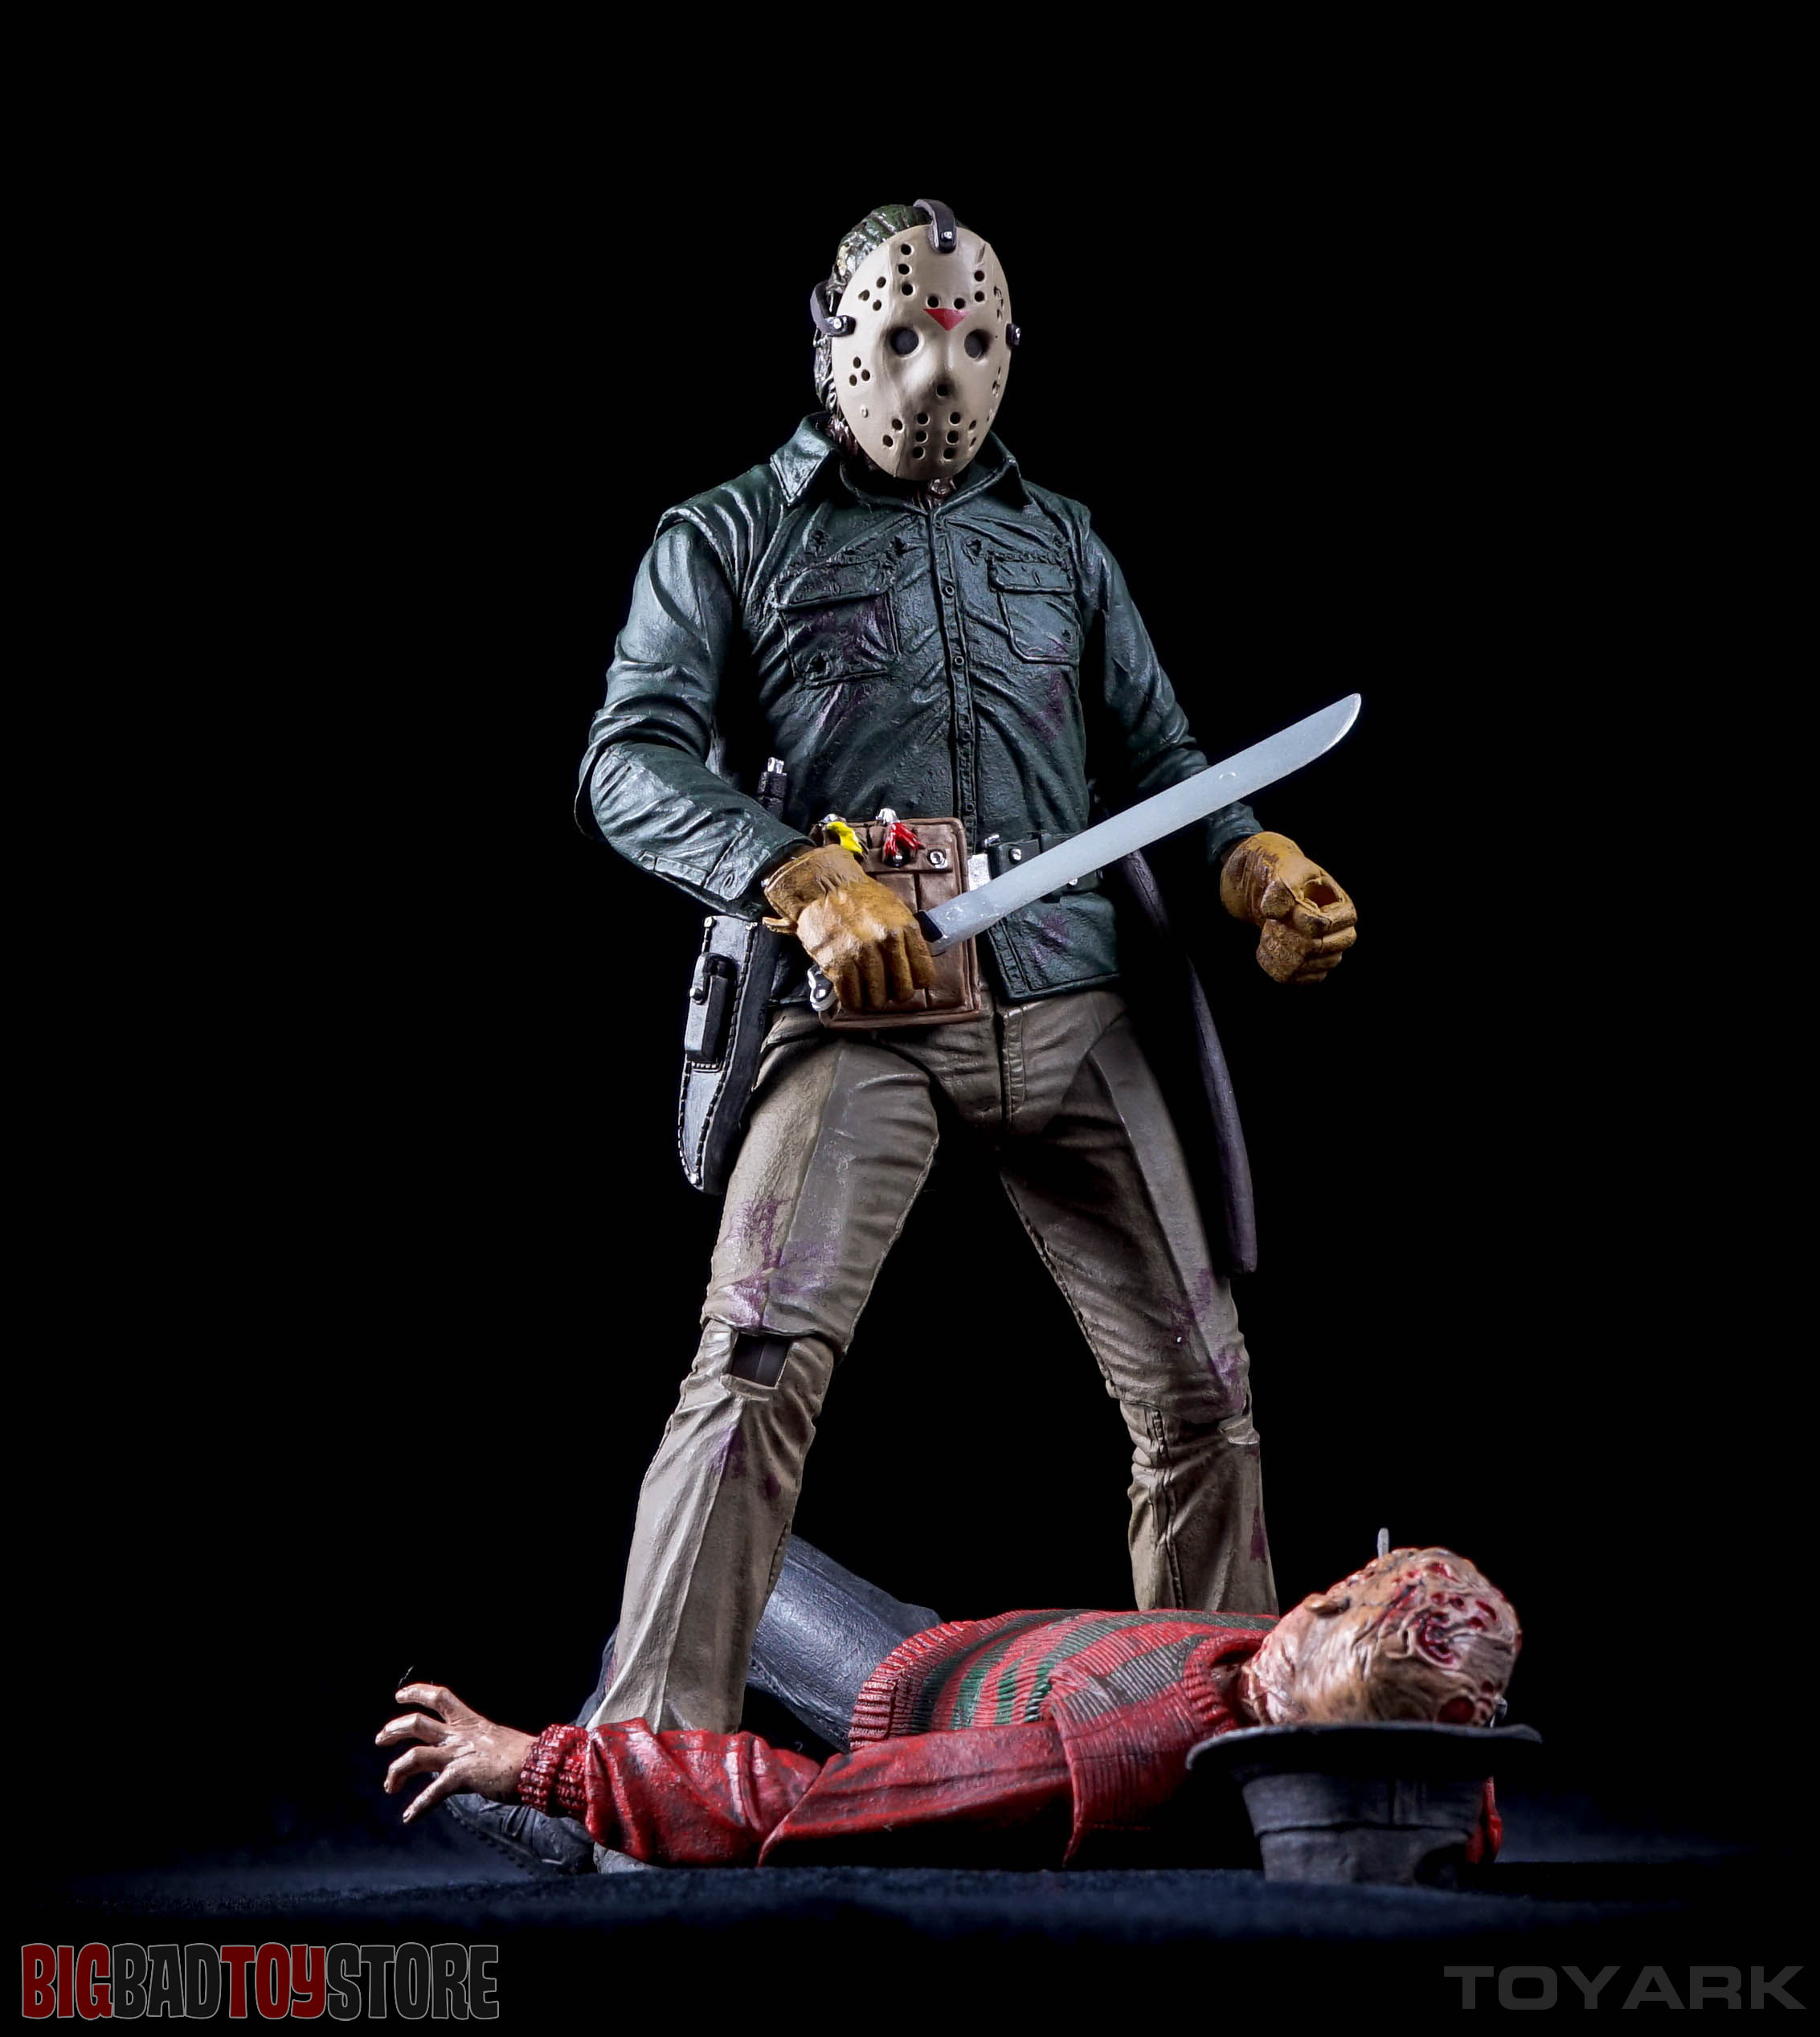 http://news.toyark.com/wp-content/uploads/sites/4/2016/01/NECA-Part-6-Ultimate-Jason-061.jpg